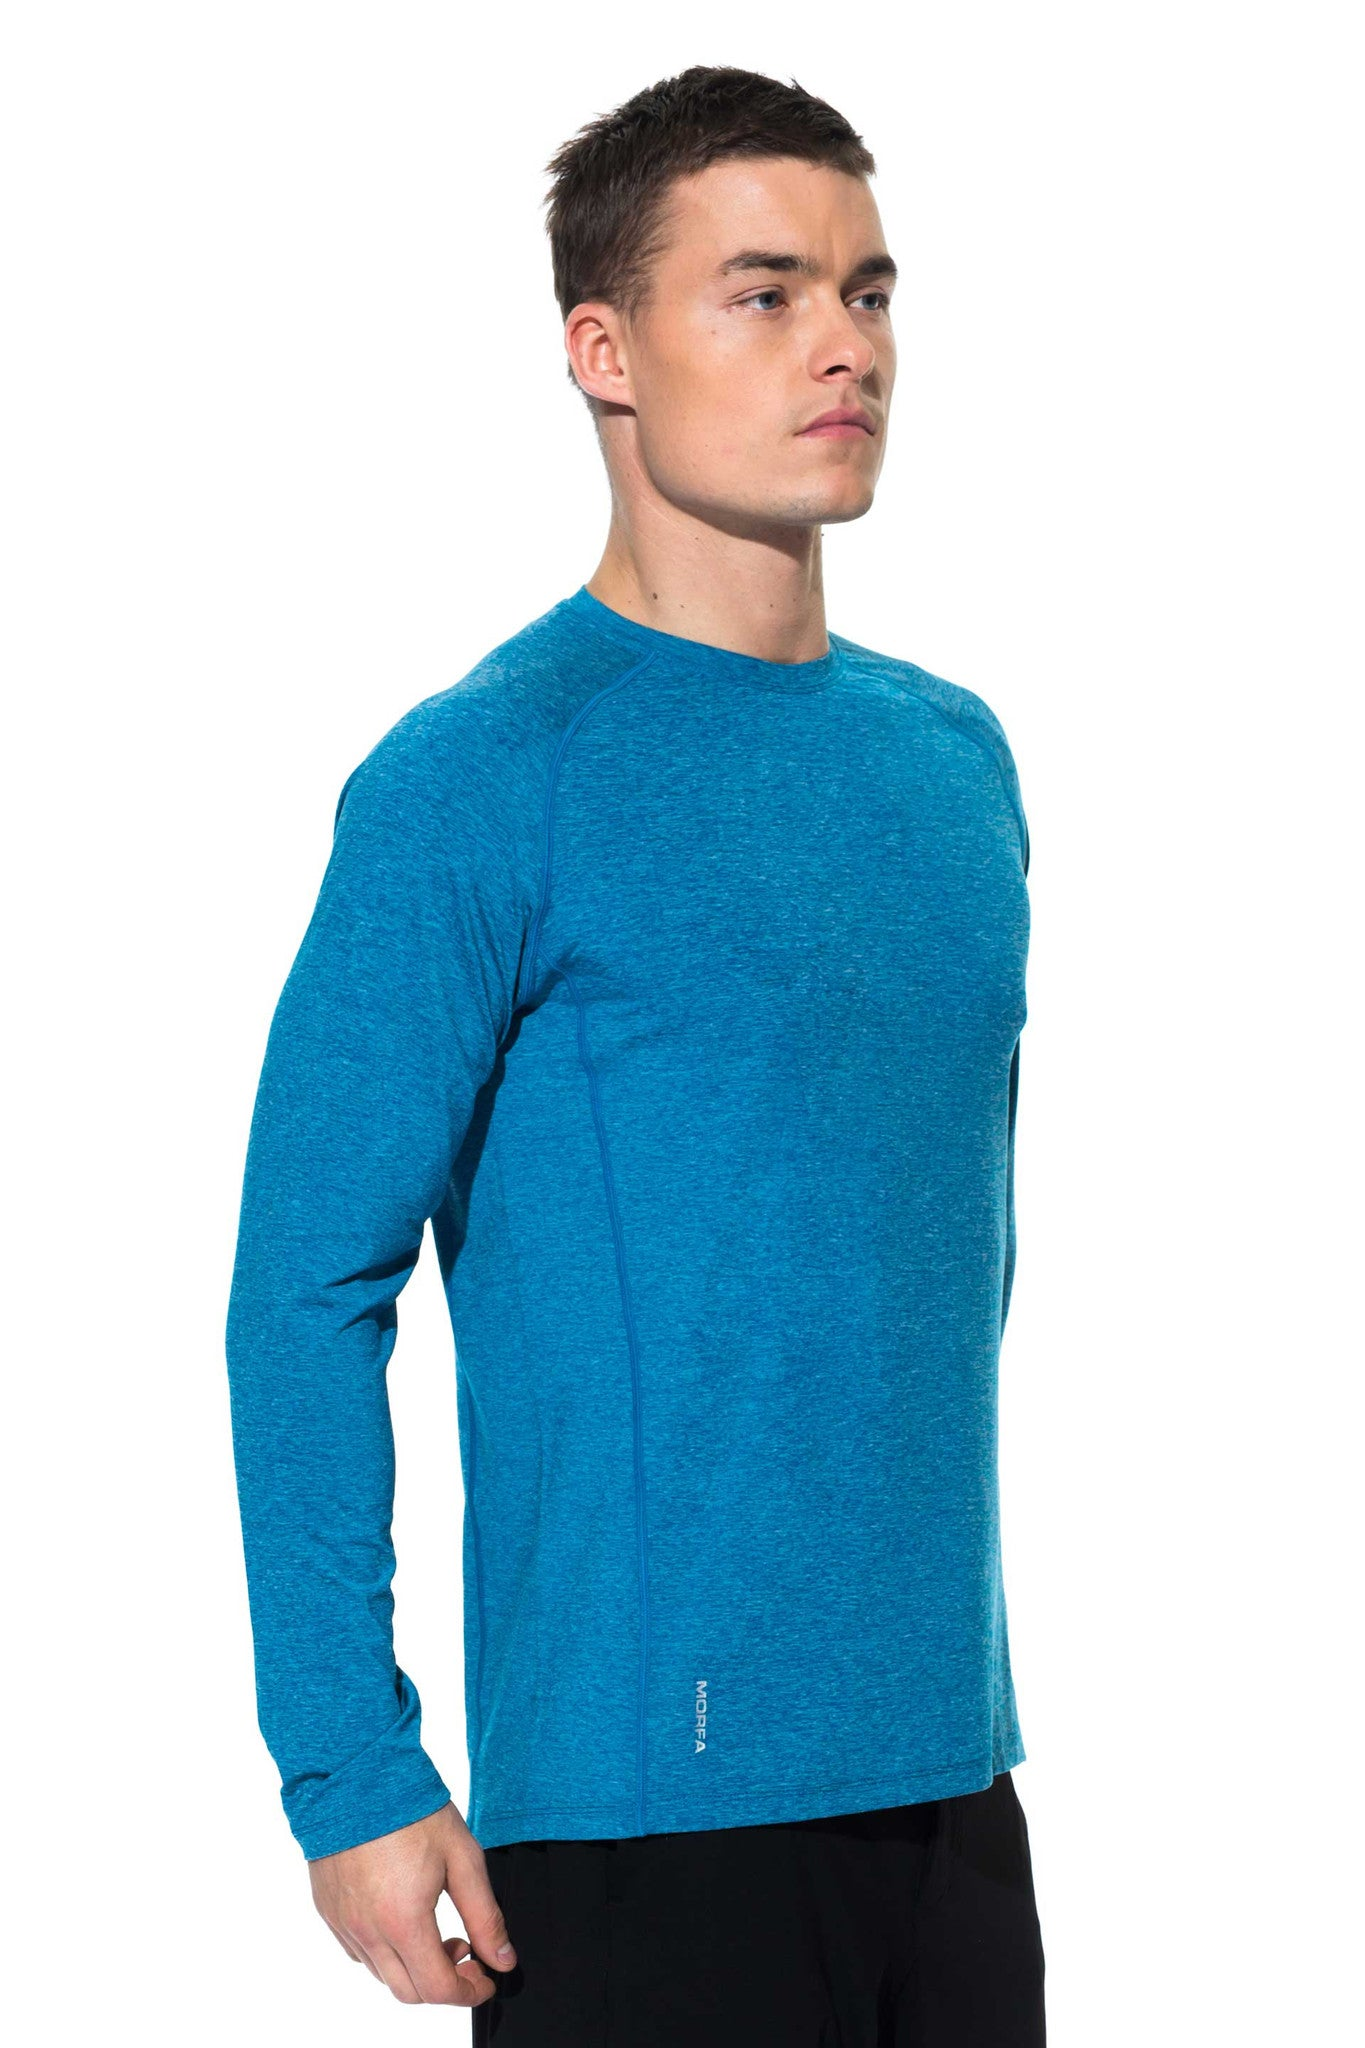 FOCUS LONG SLEEVE - OCEAN - ( SIZES: L )